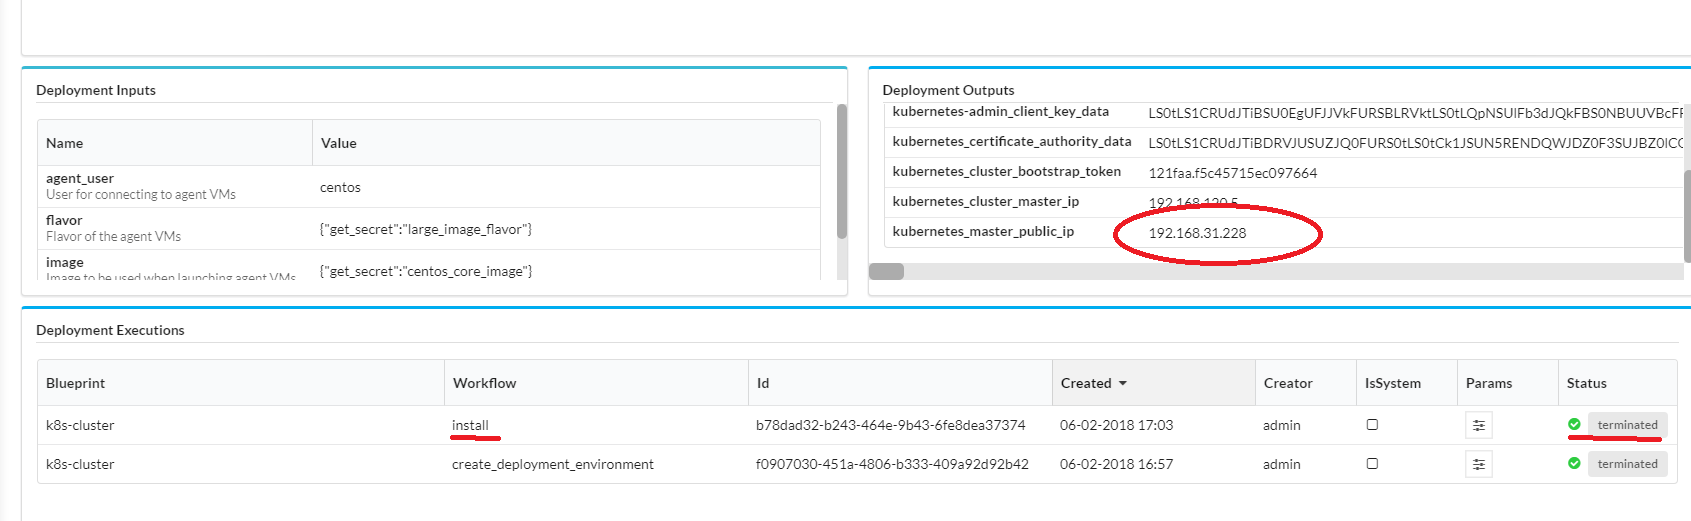 Onap on kubernetes on cloudify developer wiki confluence you can find the public ip of master node the private key to access those vm is in that cloudify launching vm malvernweather Choice Image